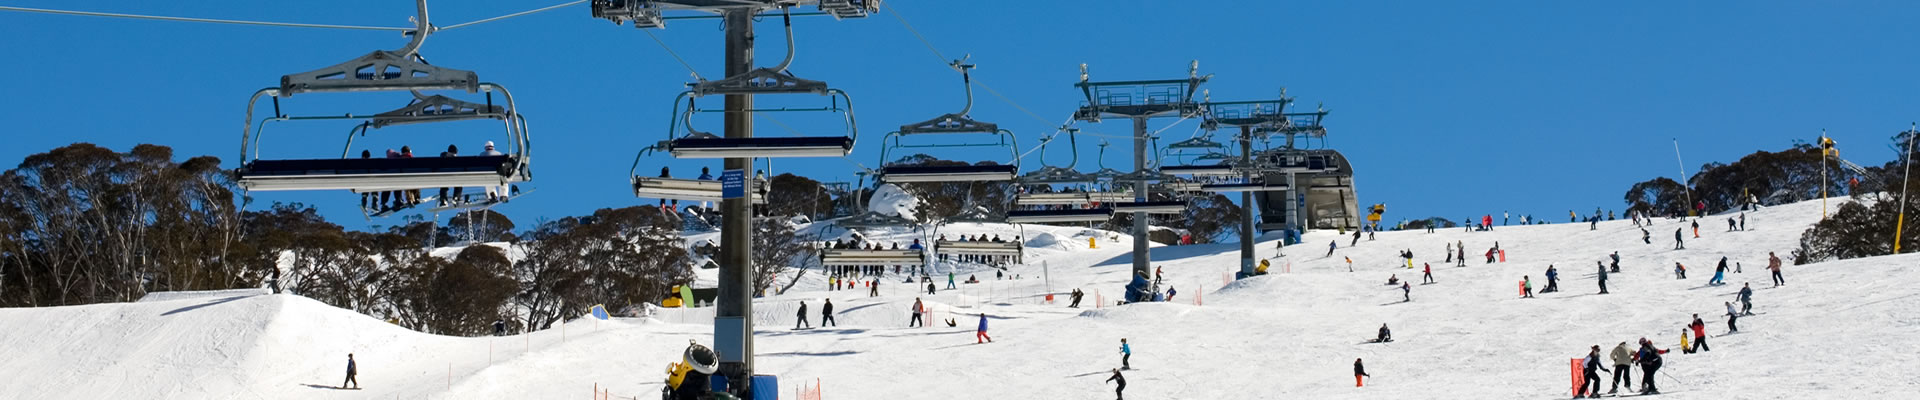 <h1 class=b_hone>AUSTRALIAN GOLF CLUB SKI LODGE   </h1></br><h2 class=b_htwo>WINTER SEASON NOW OPEN   SKI IN STYLE & COMFORT AT PERISHER   </h2><div class=home_banner2_btn><a  href=http://www.agcski.com.au/member/availability>CHECK AVAILABILITY</a></div>